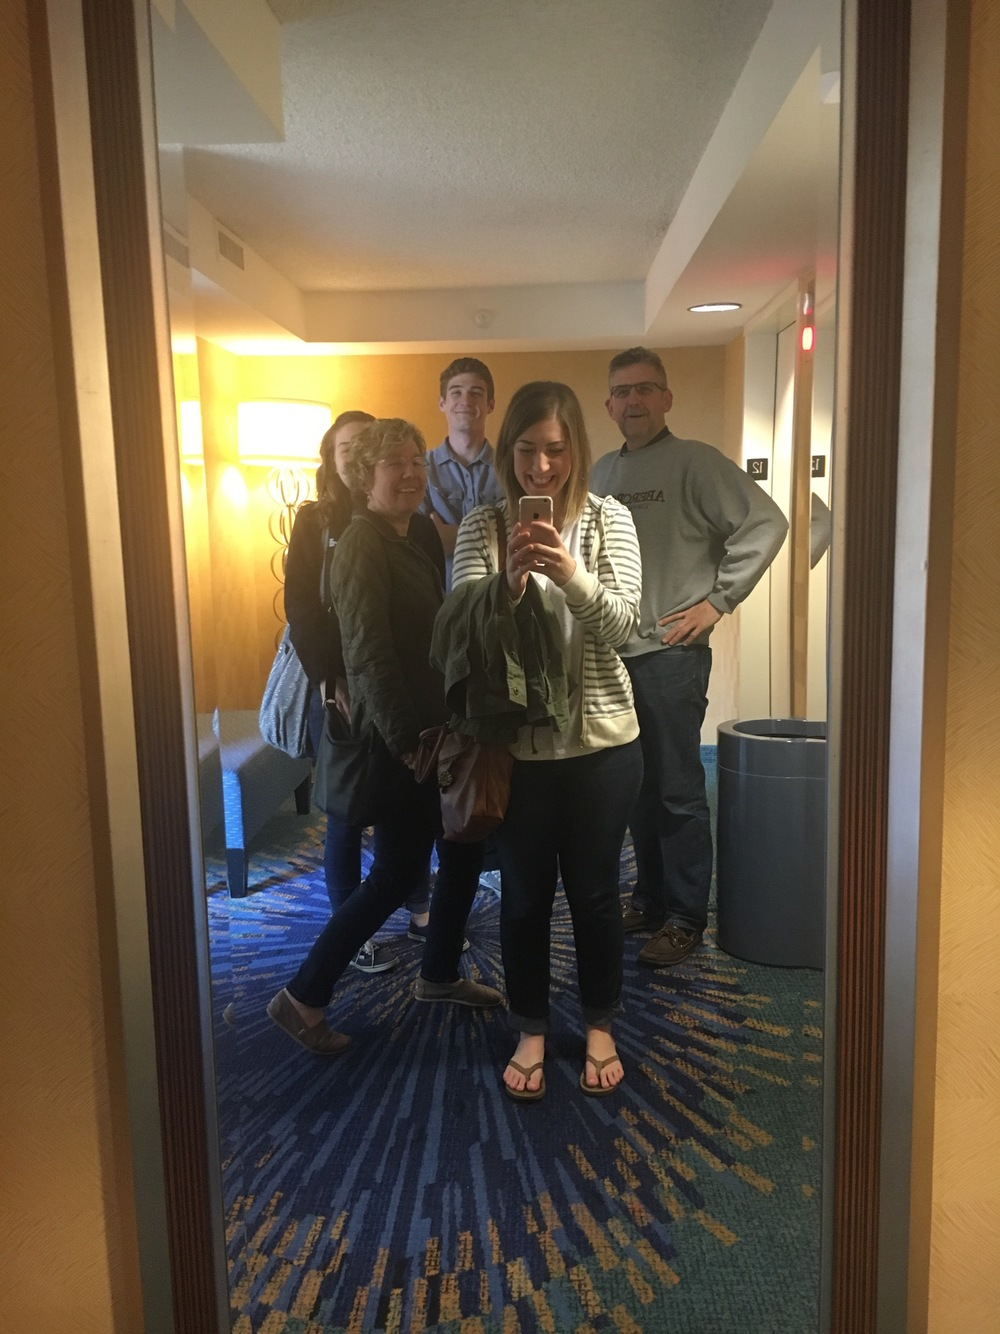 Family selfie in the hotel mirror!